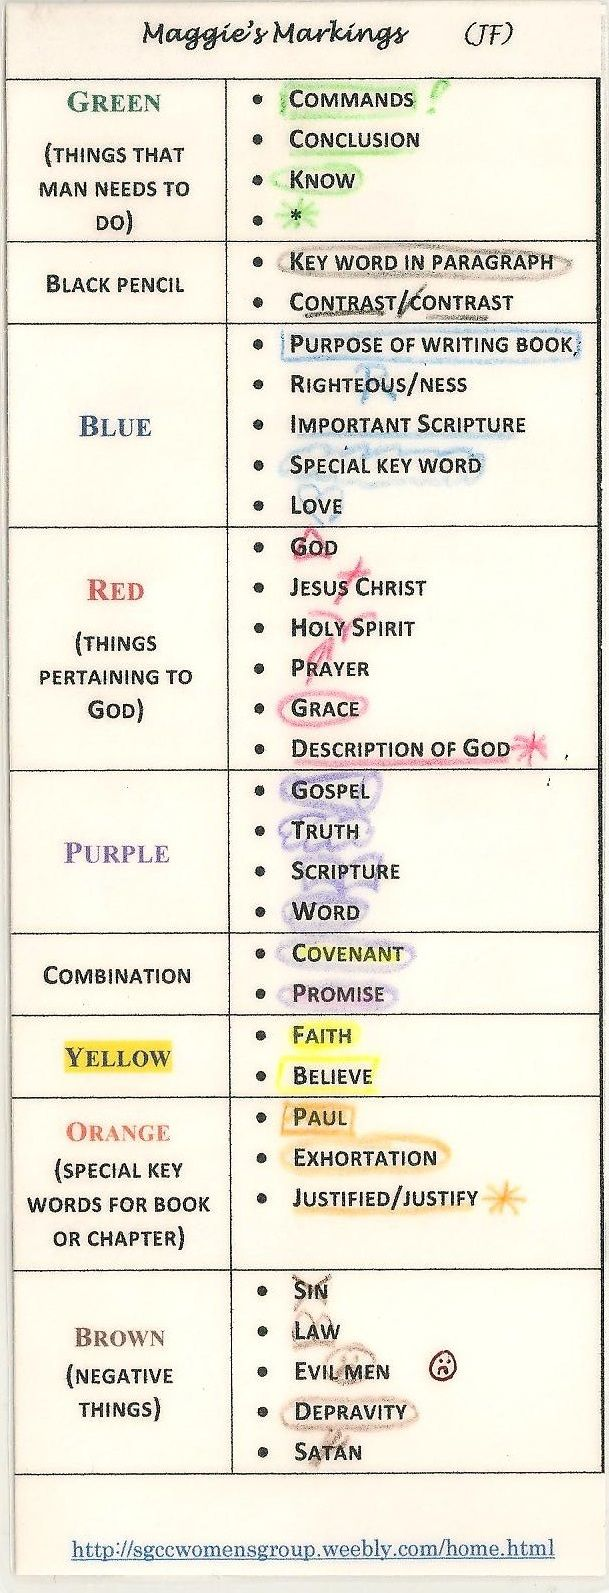 Maggie's Markings Inductive Bible study bookmark (at http://sgccwomensgroup.weebly.com/)  or https://www.dropbox.com/s/qs5knxpbi7lckmj/MaggiesMarkingsTEST5.9.16_A.jpg?dl=0